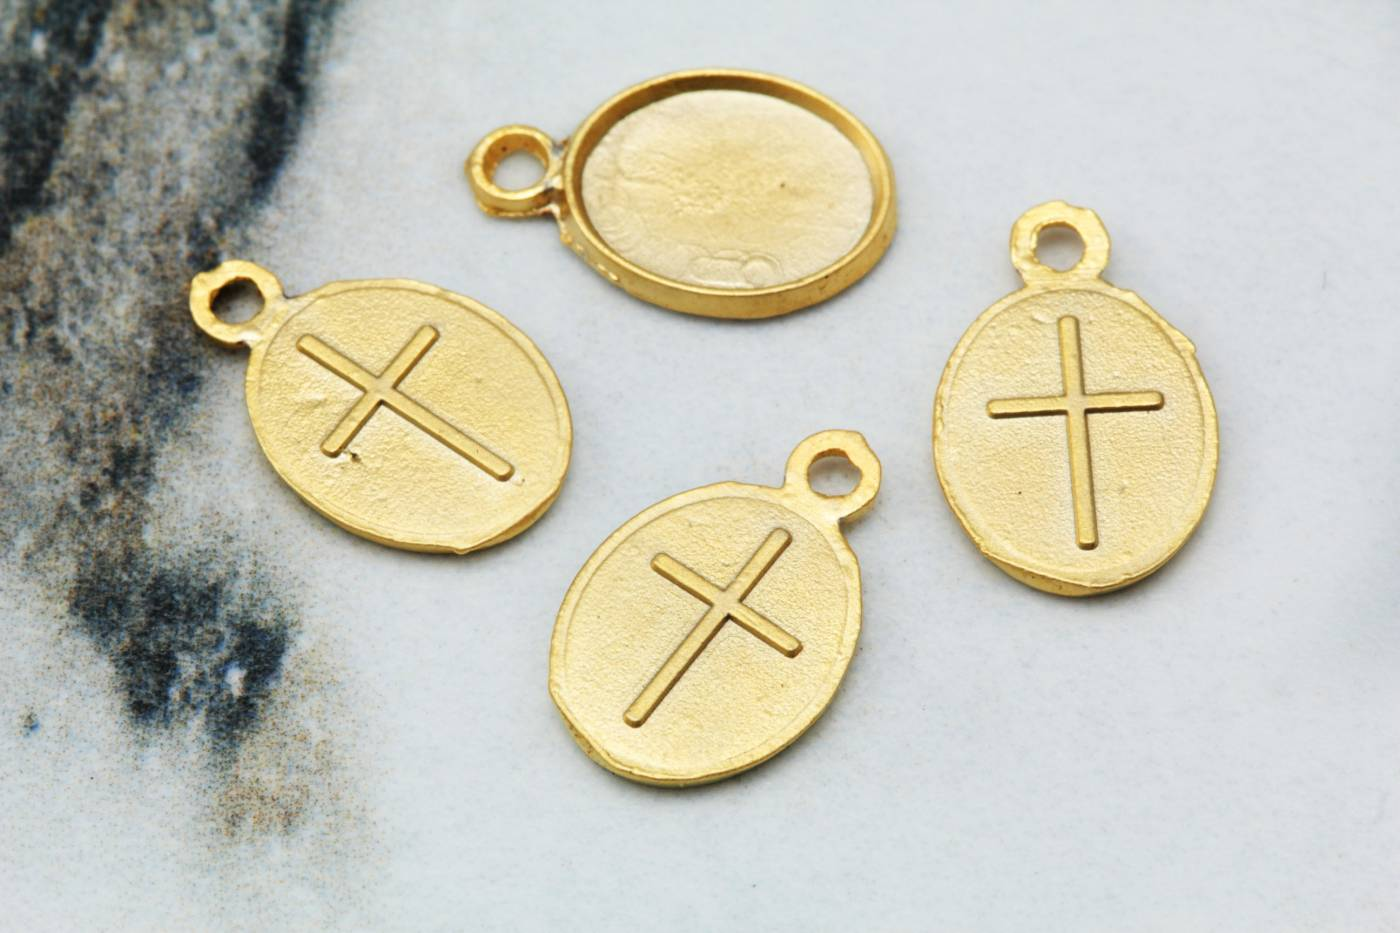 gold-metal-tiny-cross-pendant-charms.jpg